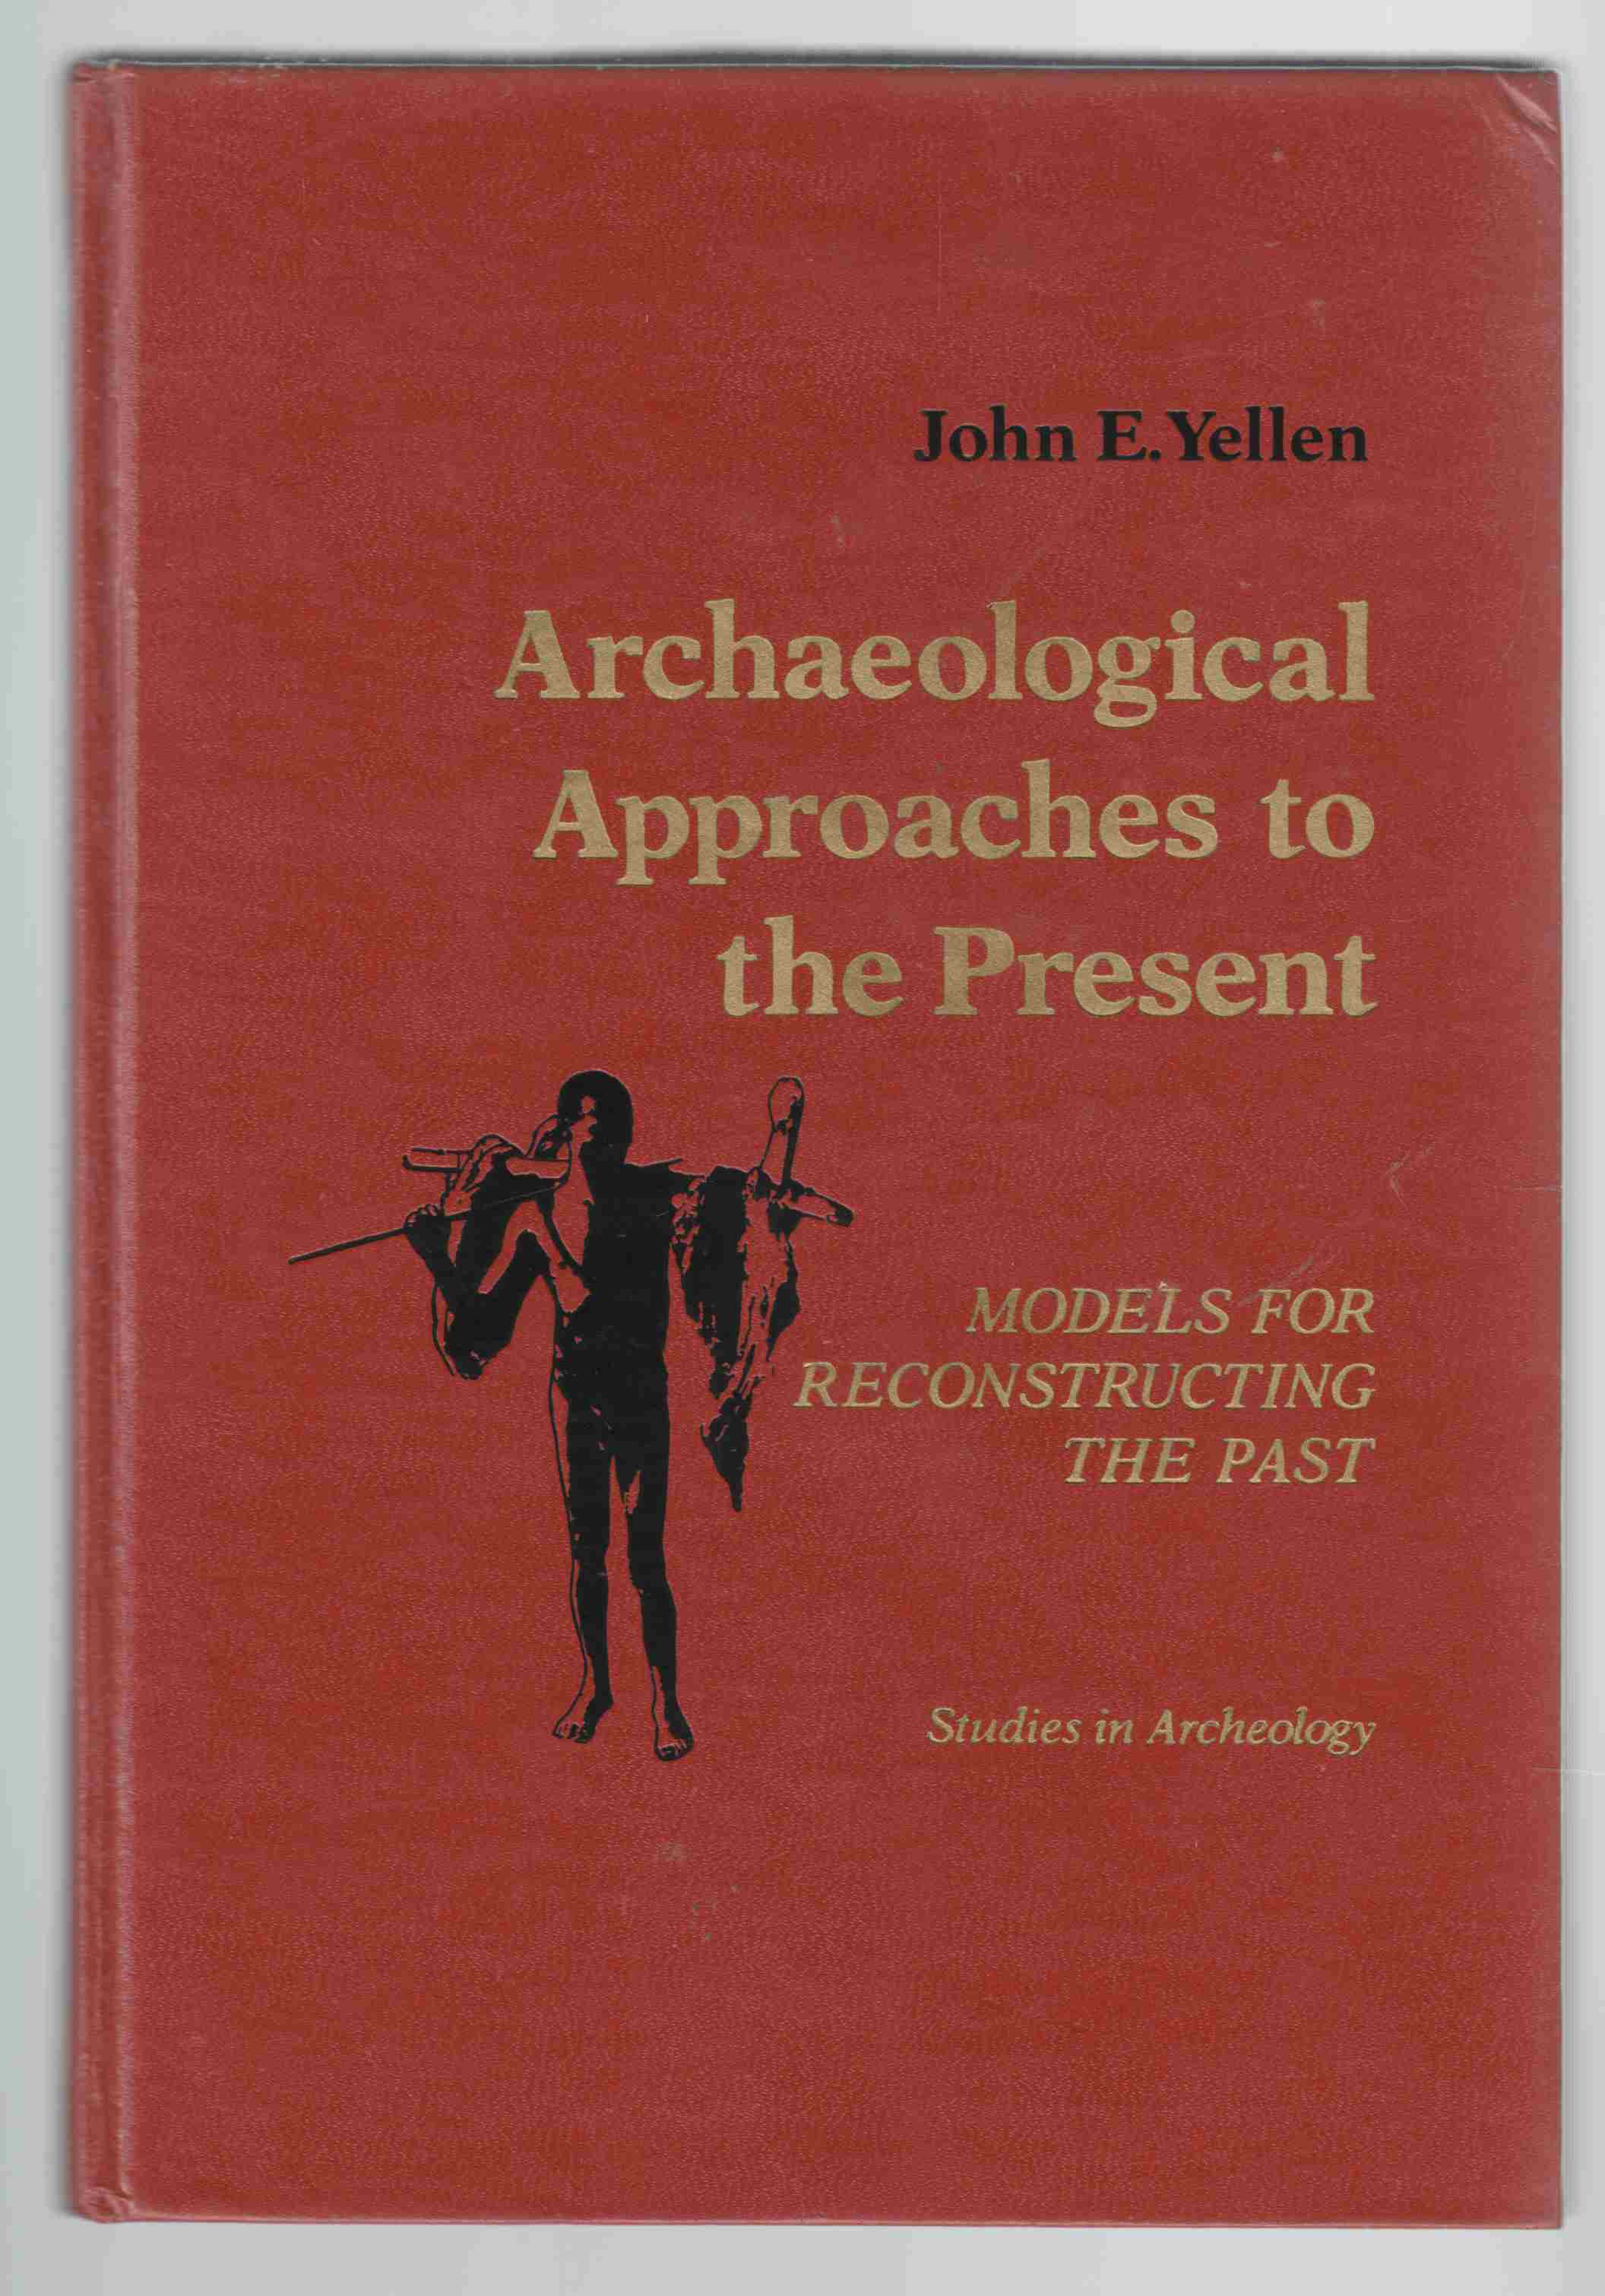 Image for Archaeological Approaches to the Present Models for Reconstructing the Past